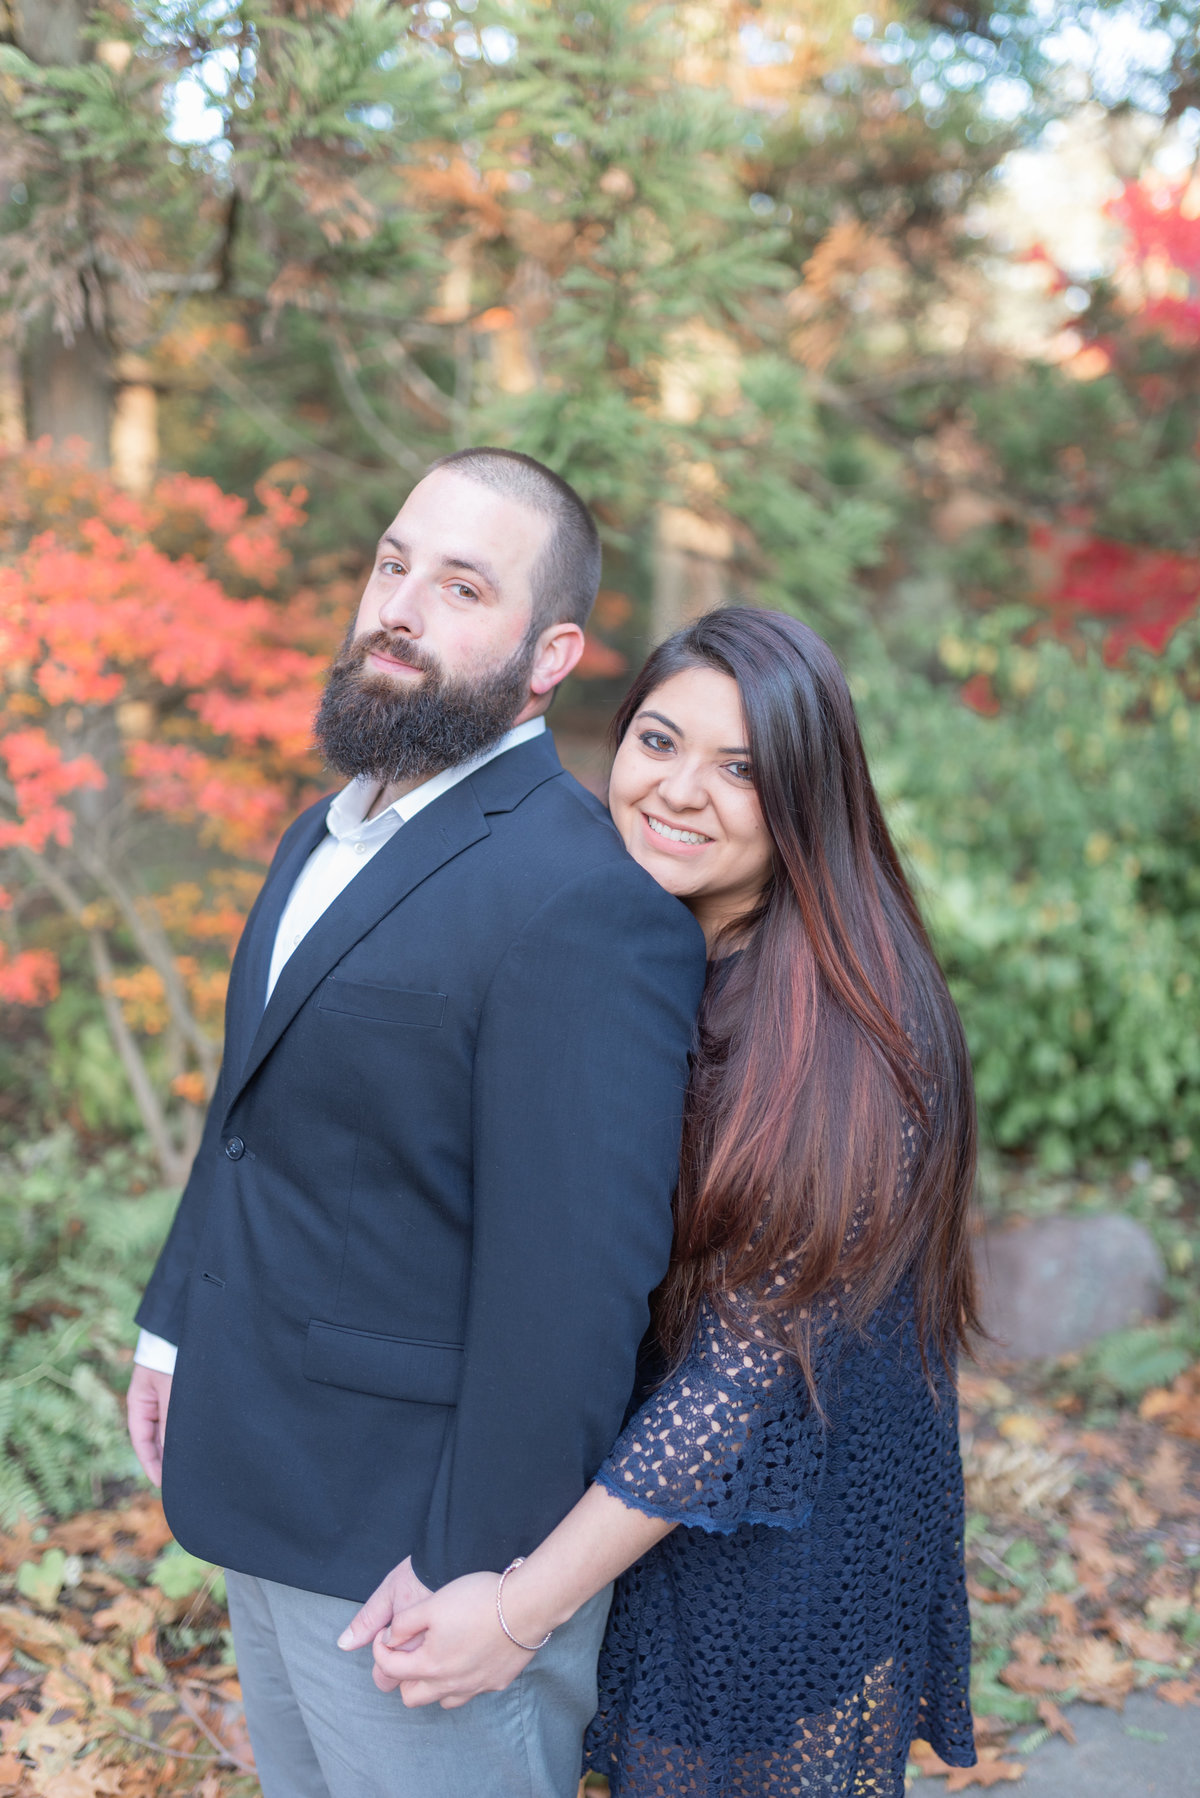 Best Portrait and Wedding Photographer in New Jersey | Office in